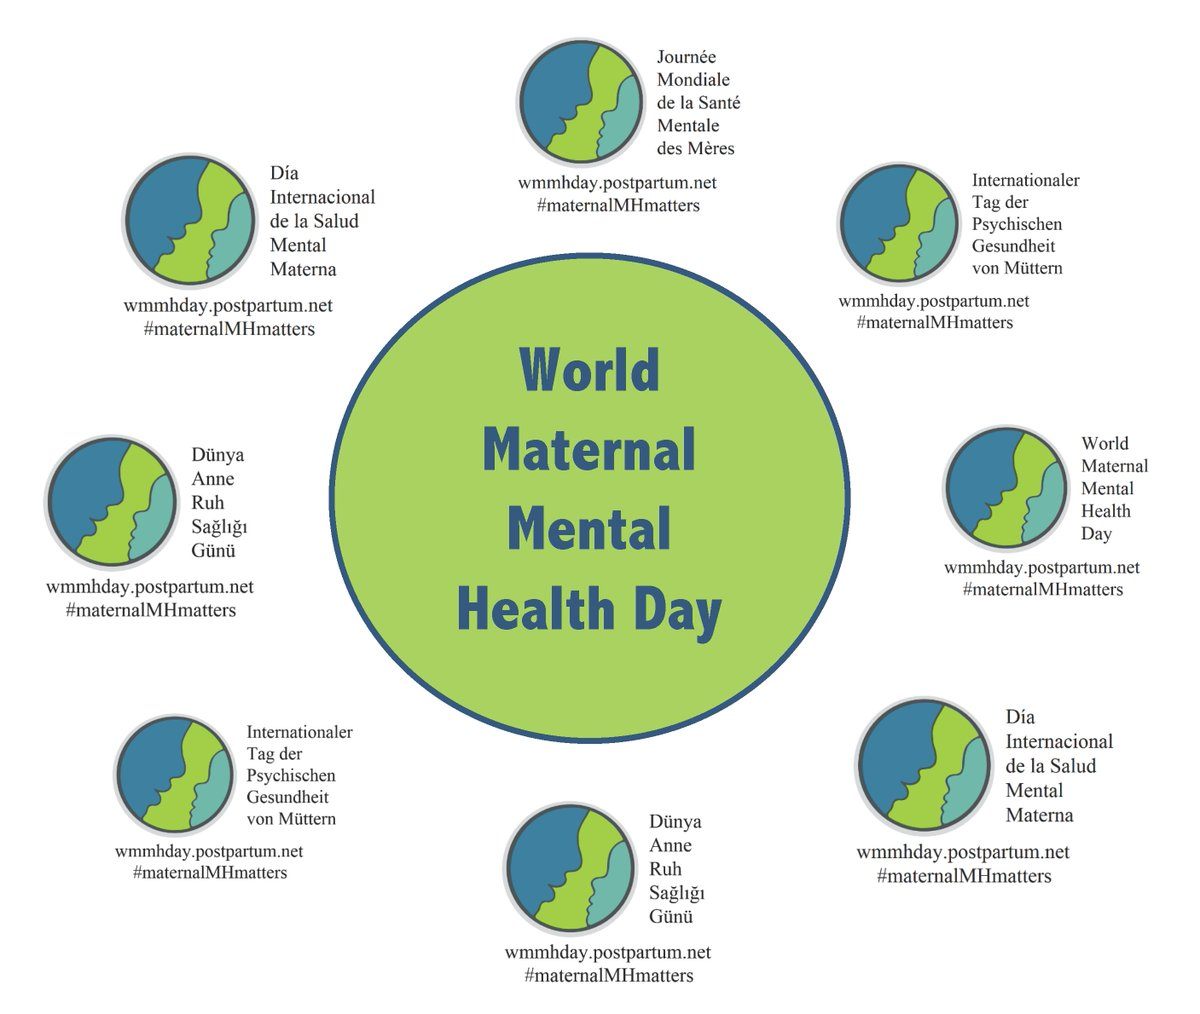 The Marce Society On Twitter World Maternal Mental Health Day Is May 4th You Can Make A Difference Tco PYNqllRYb5 MaternalMHmatters